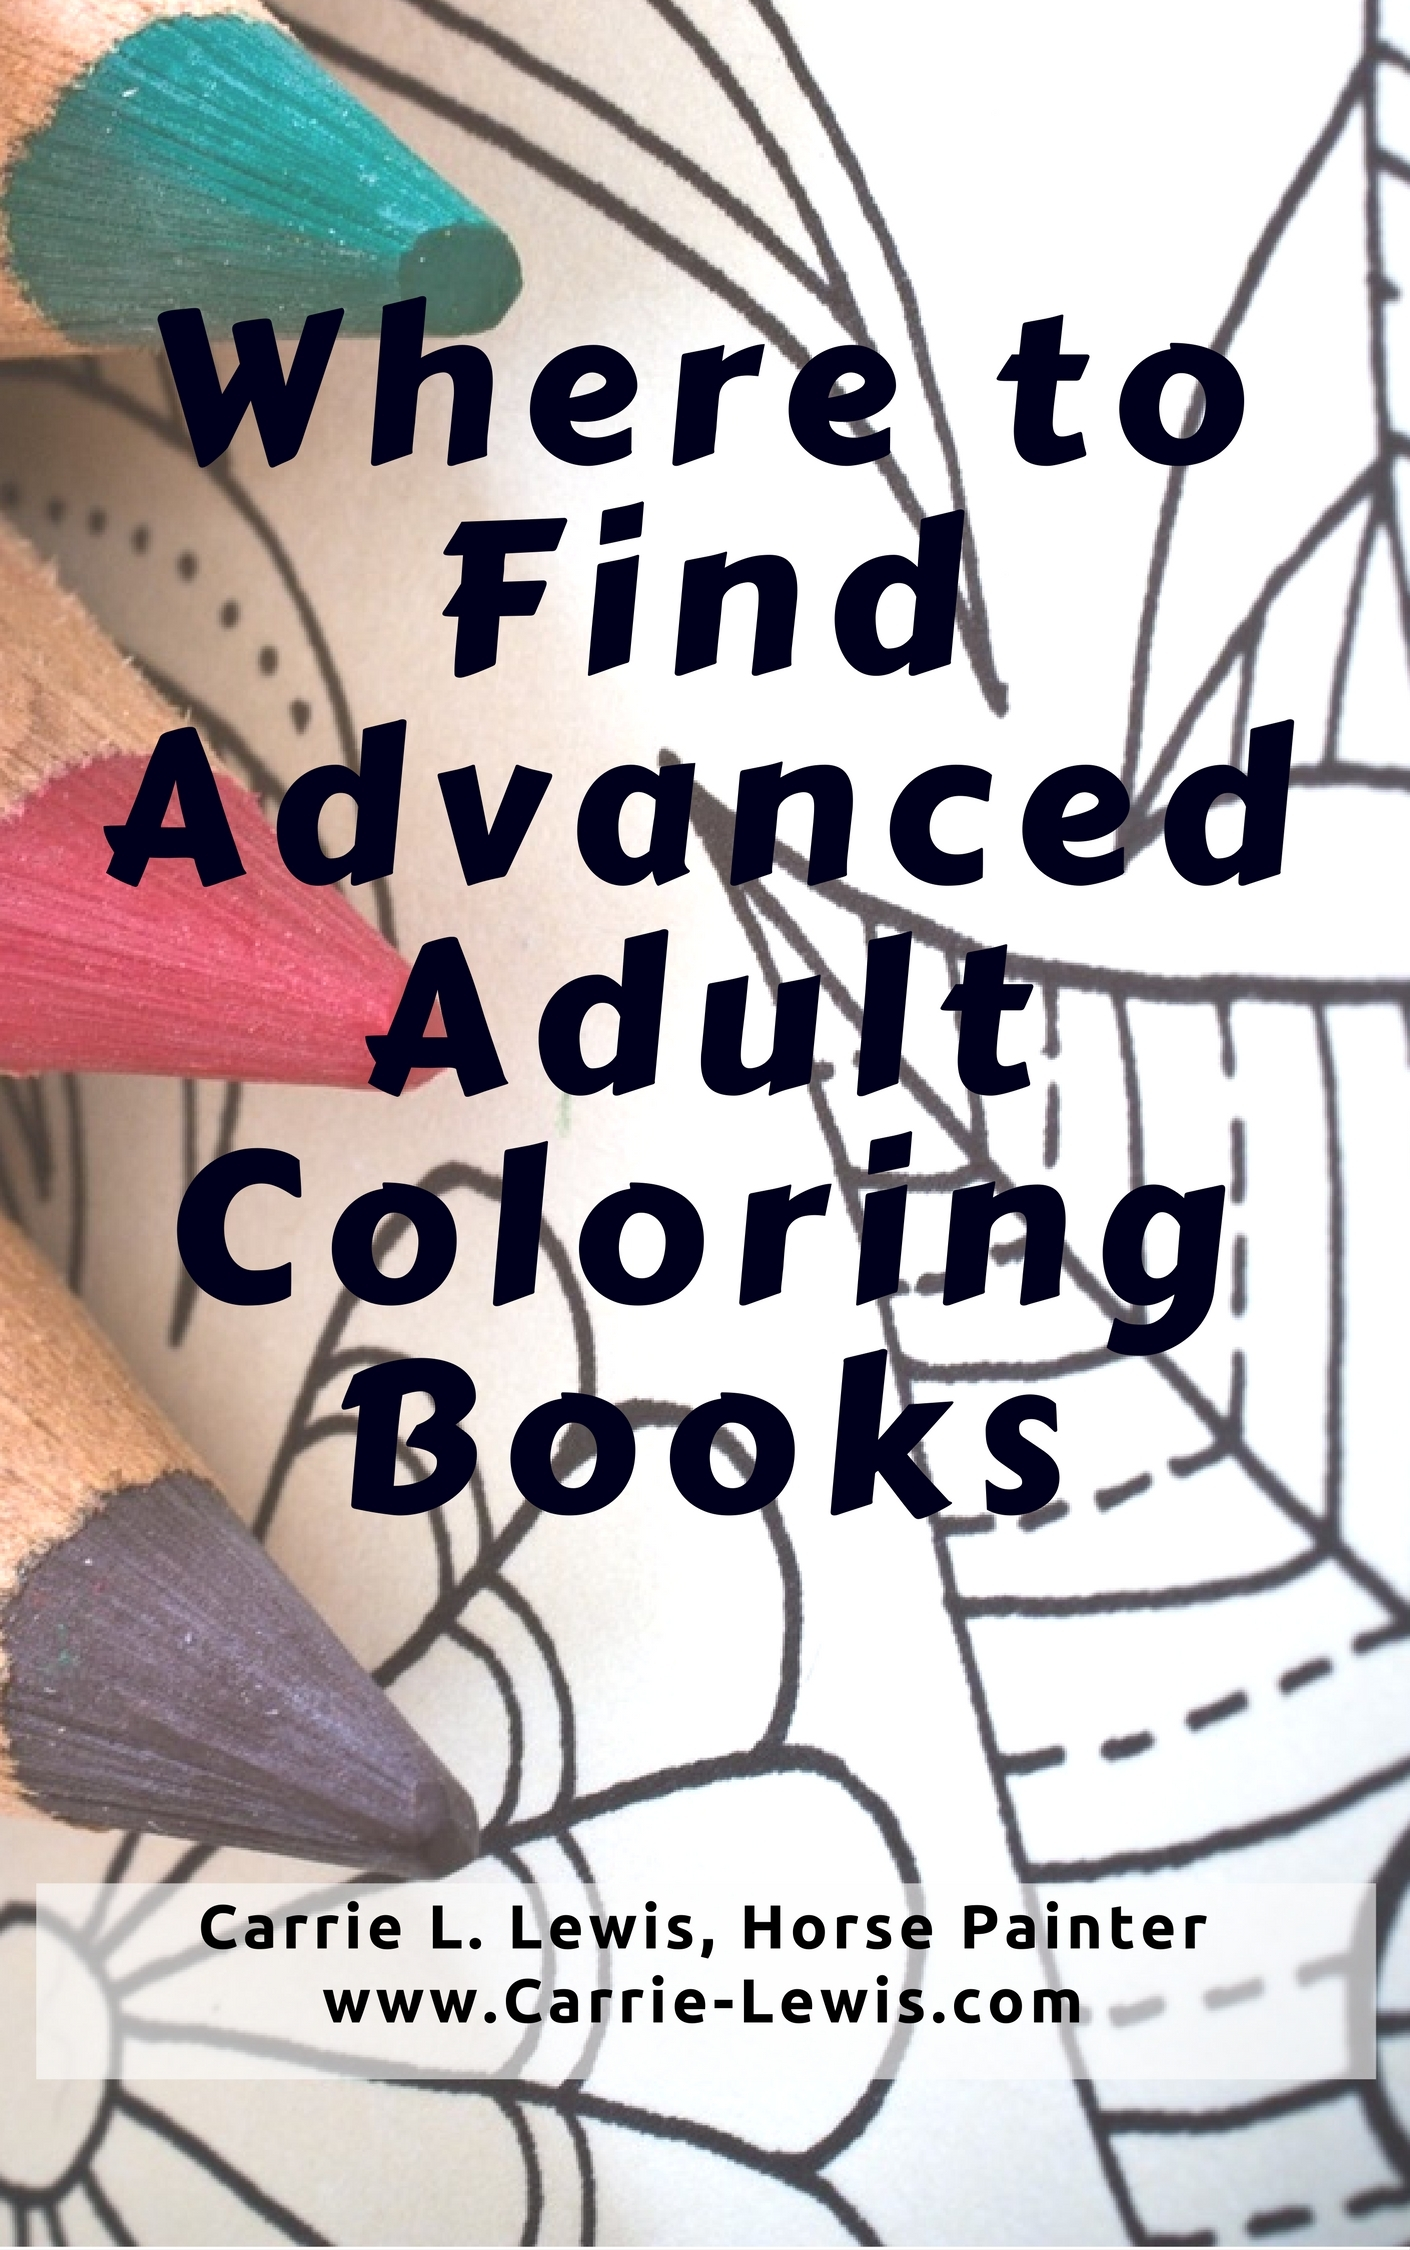 Where To Find Advanced Adult Coloring Books - Carrie L. Lewis, Artist